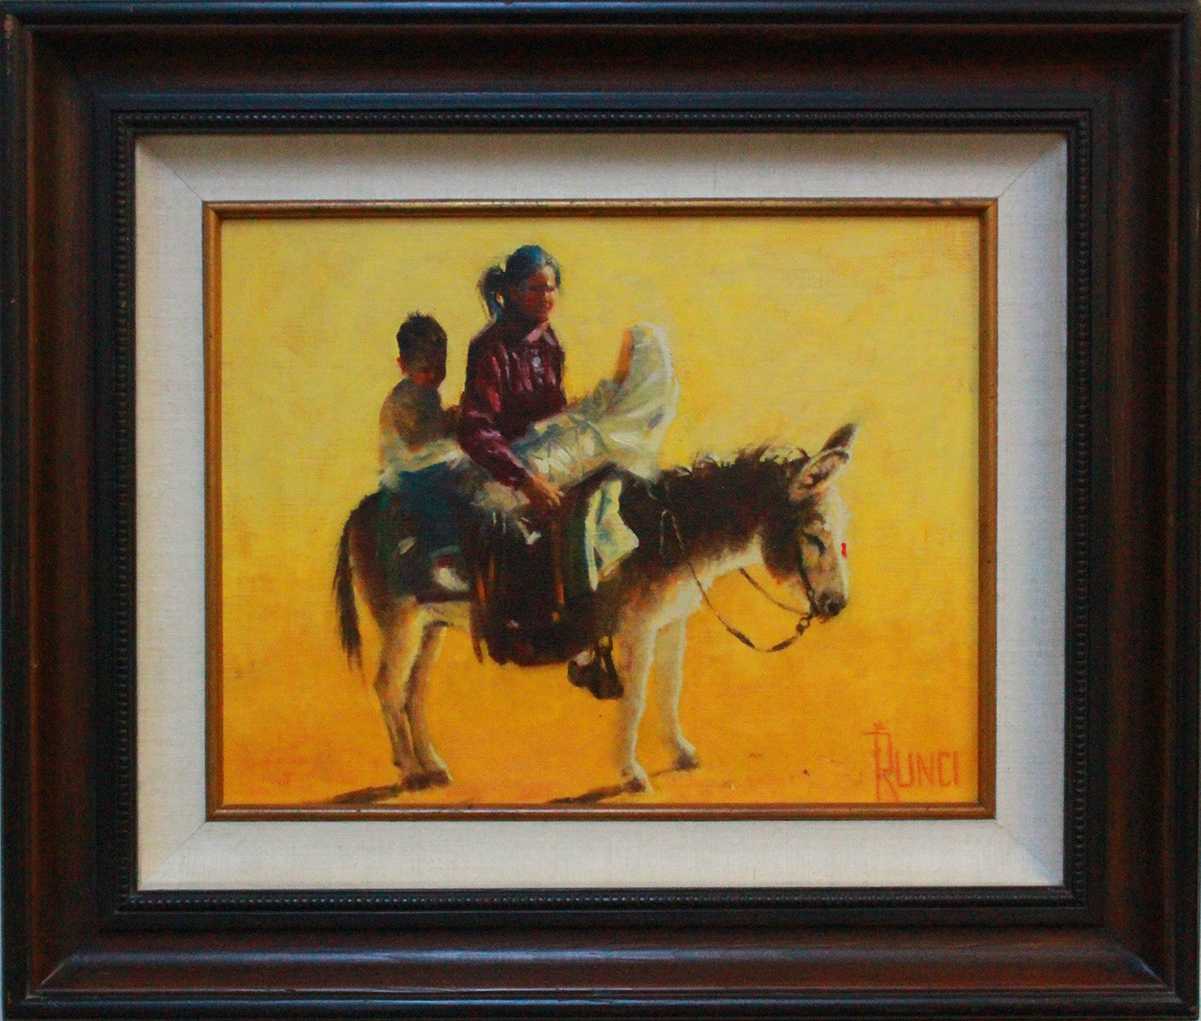 Painting of a Native American woman on a burro with two small children